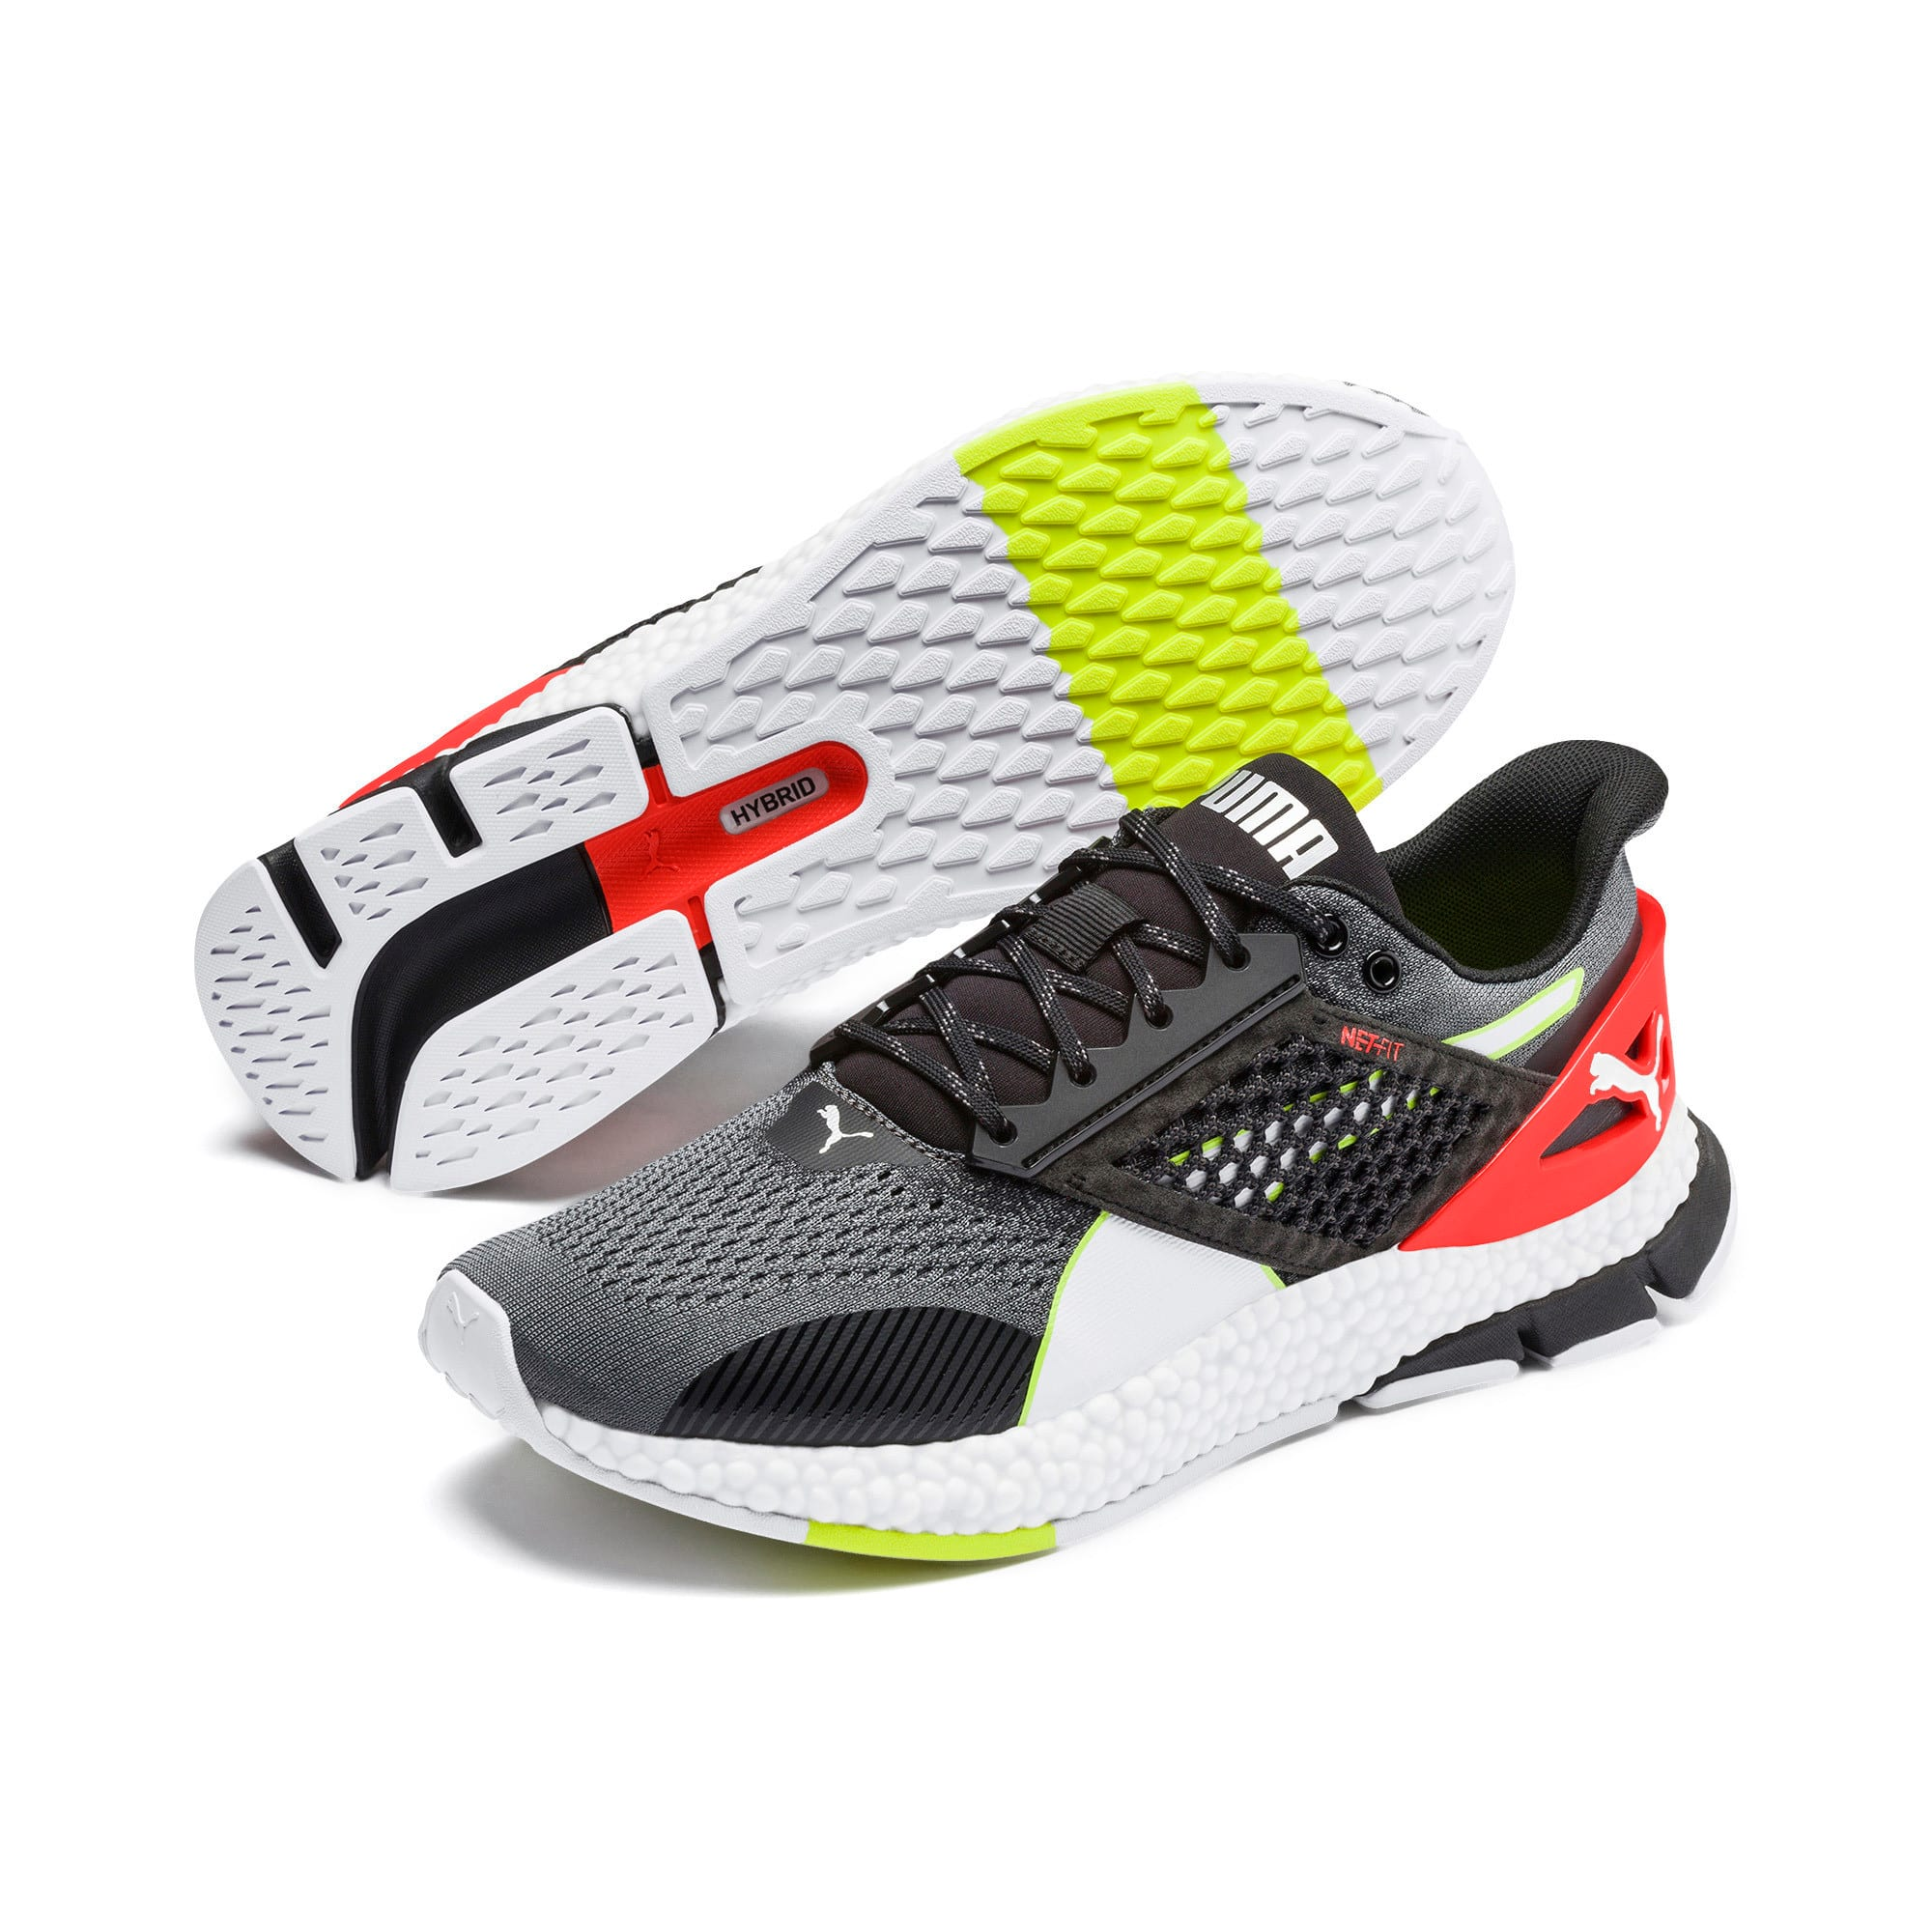 Thumbnail 3 of HYBRID Astro Men's Running Shoes, CASTLEROCK-Puma Blck-Ngy Red, medium